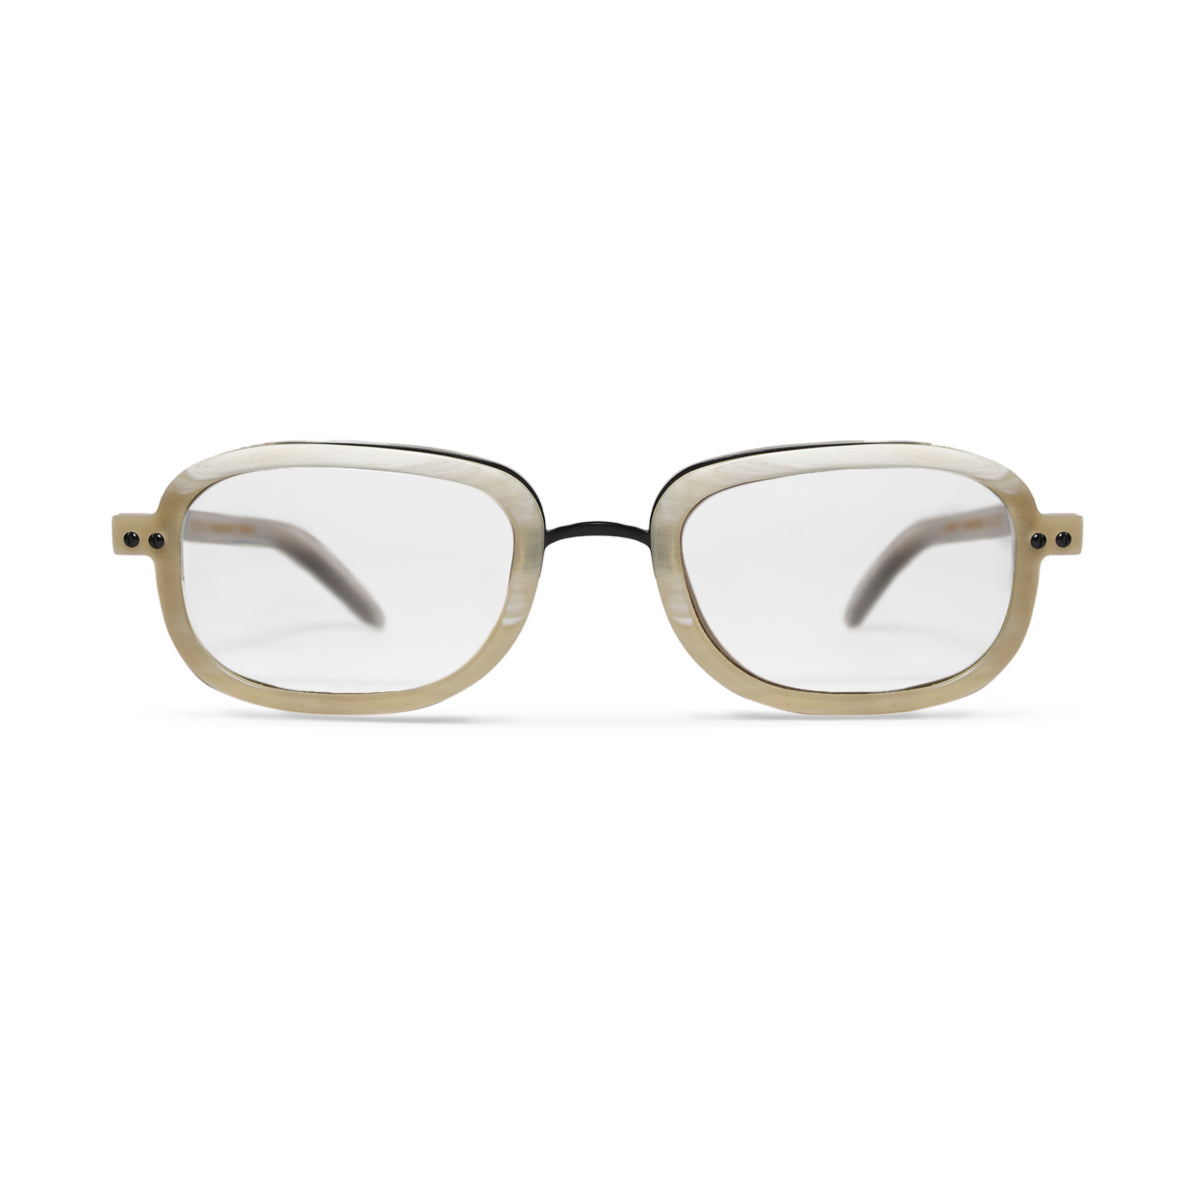 Horn. Oxen. Clear Lens. - BLYSZAK eyewear eyewear - eyewear, optical, sunglasses